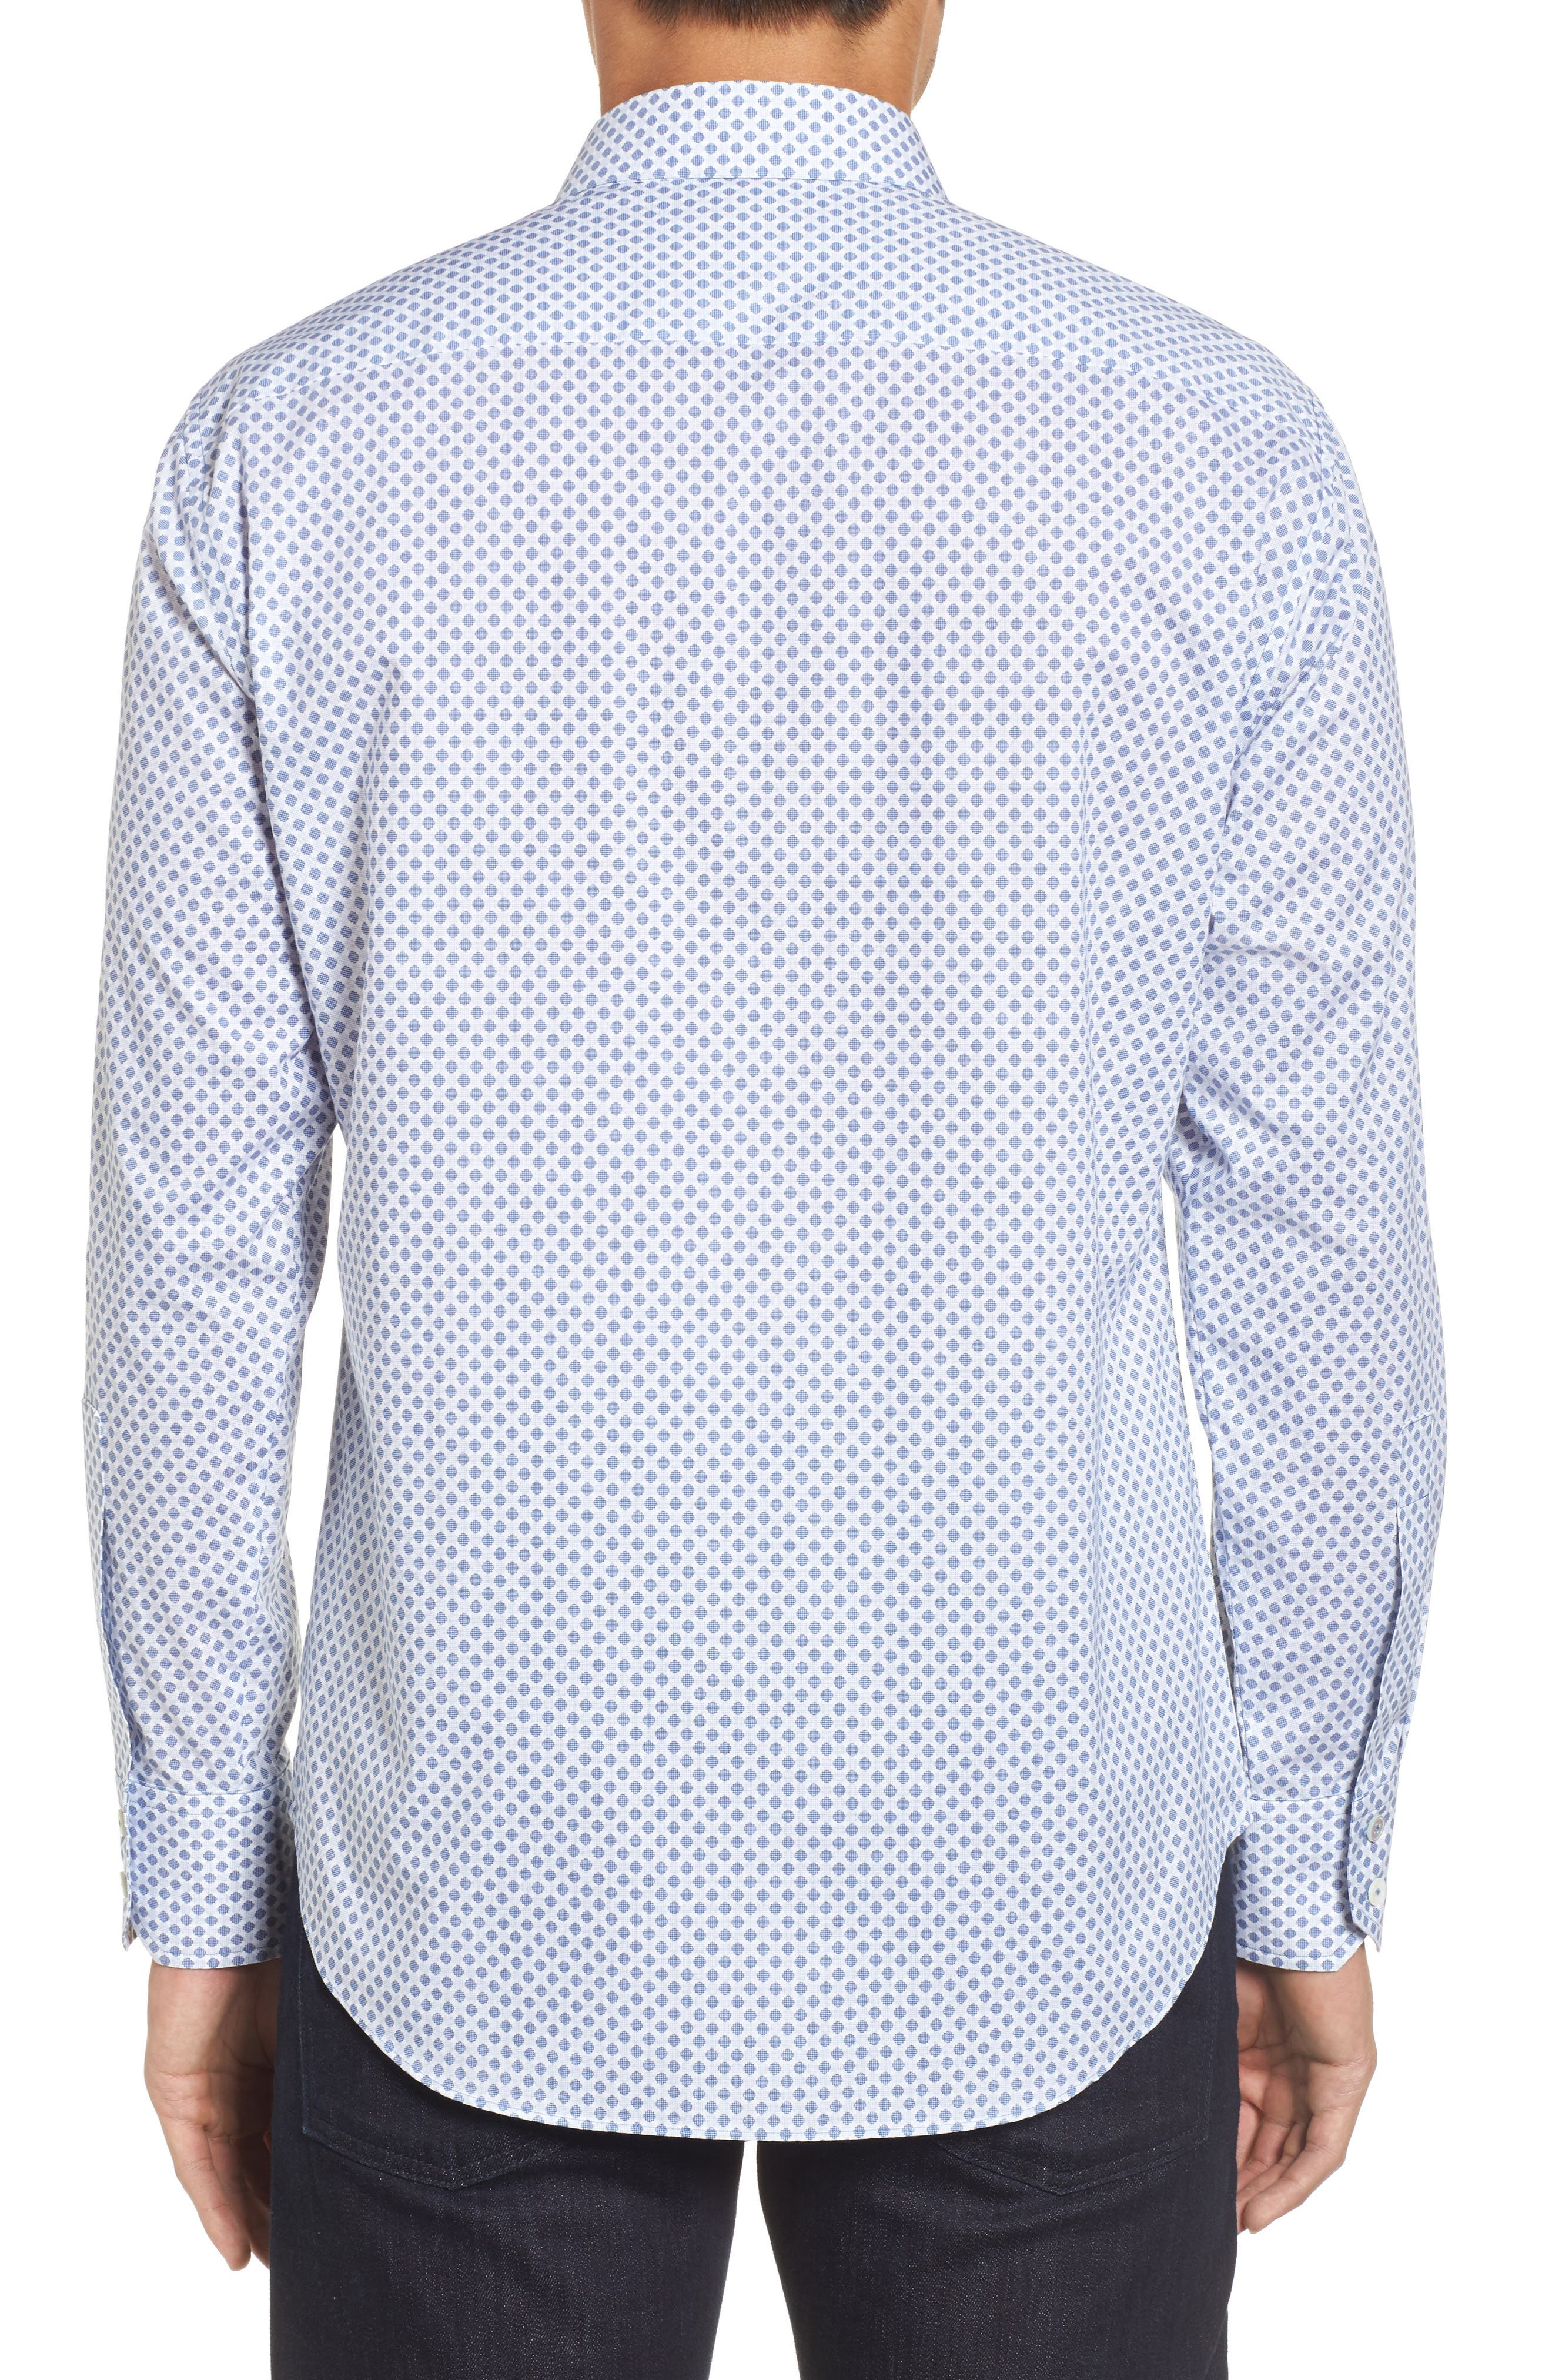 Obi Slim Fit Circle Print Sport Shirt,                             Alternate thumbnail 2, color,                             NAVY